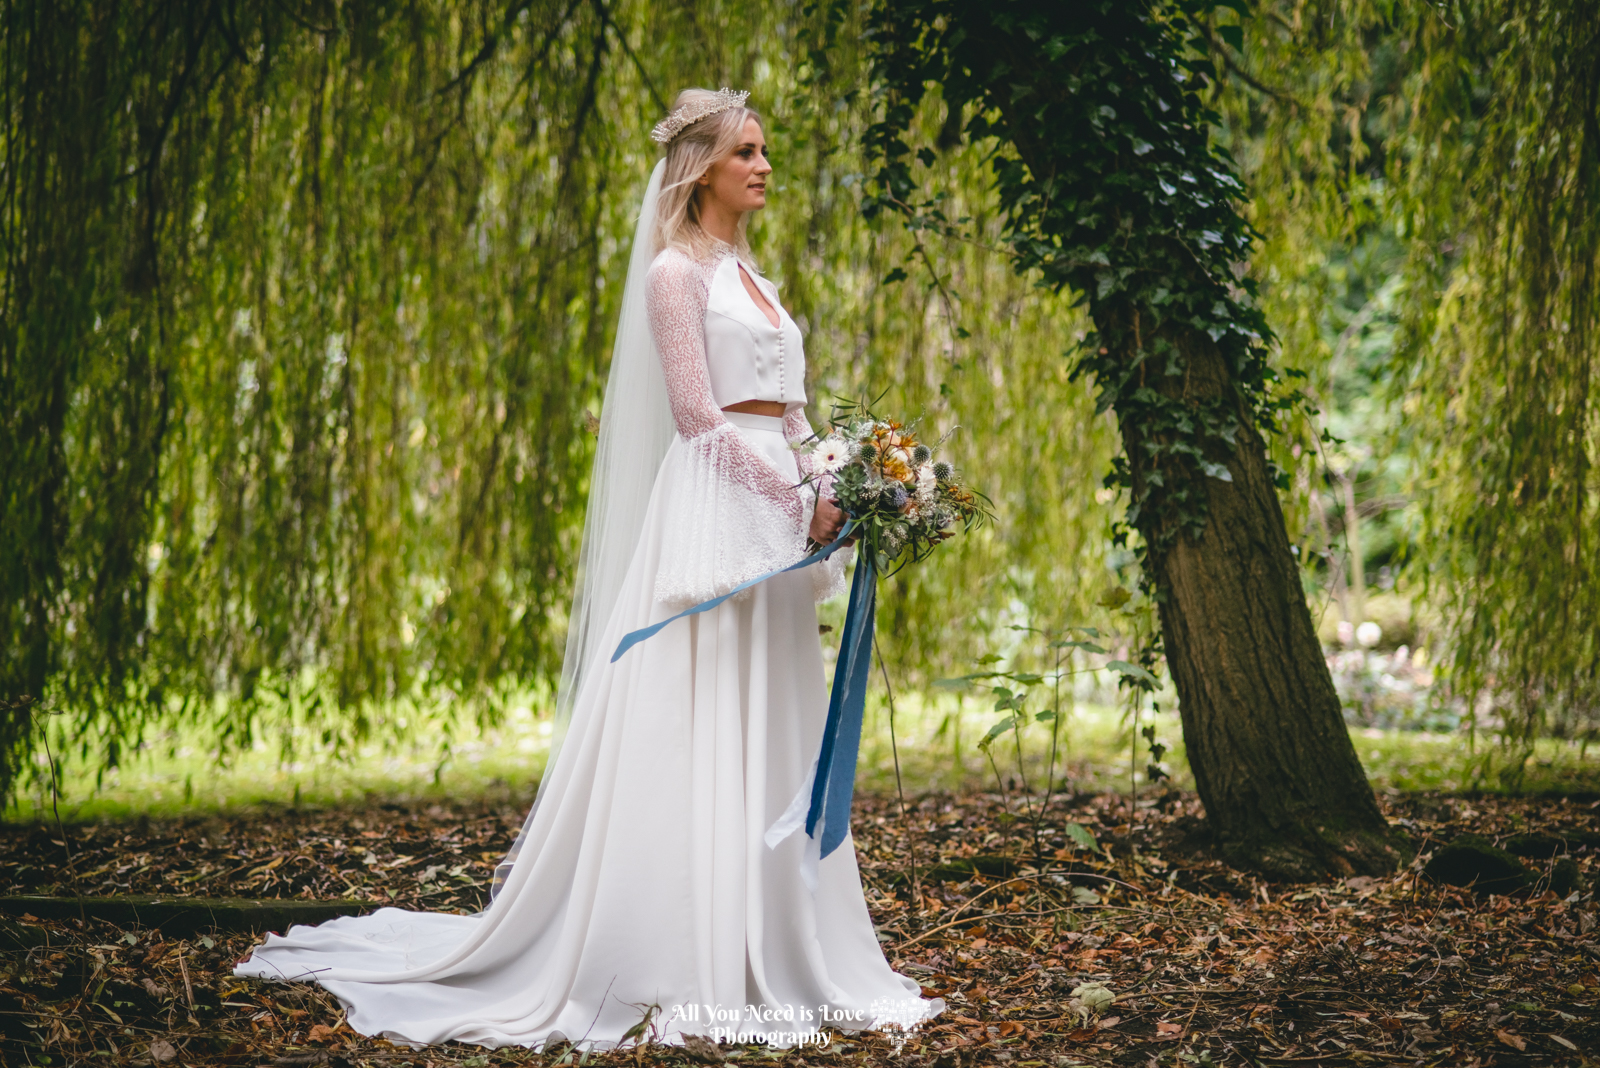 bespoke wedding dress, handmade wedding dress, on of a kind lace wedding dress